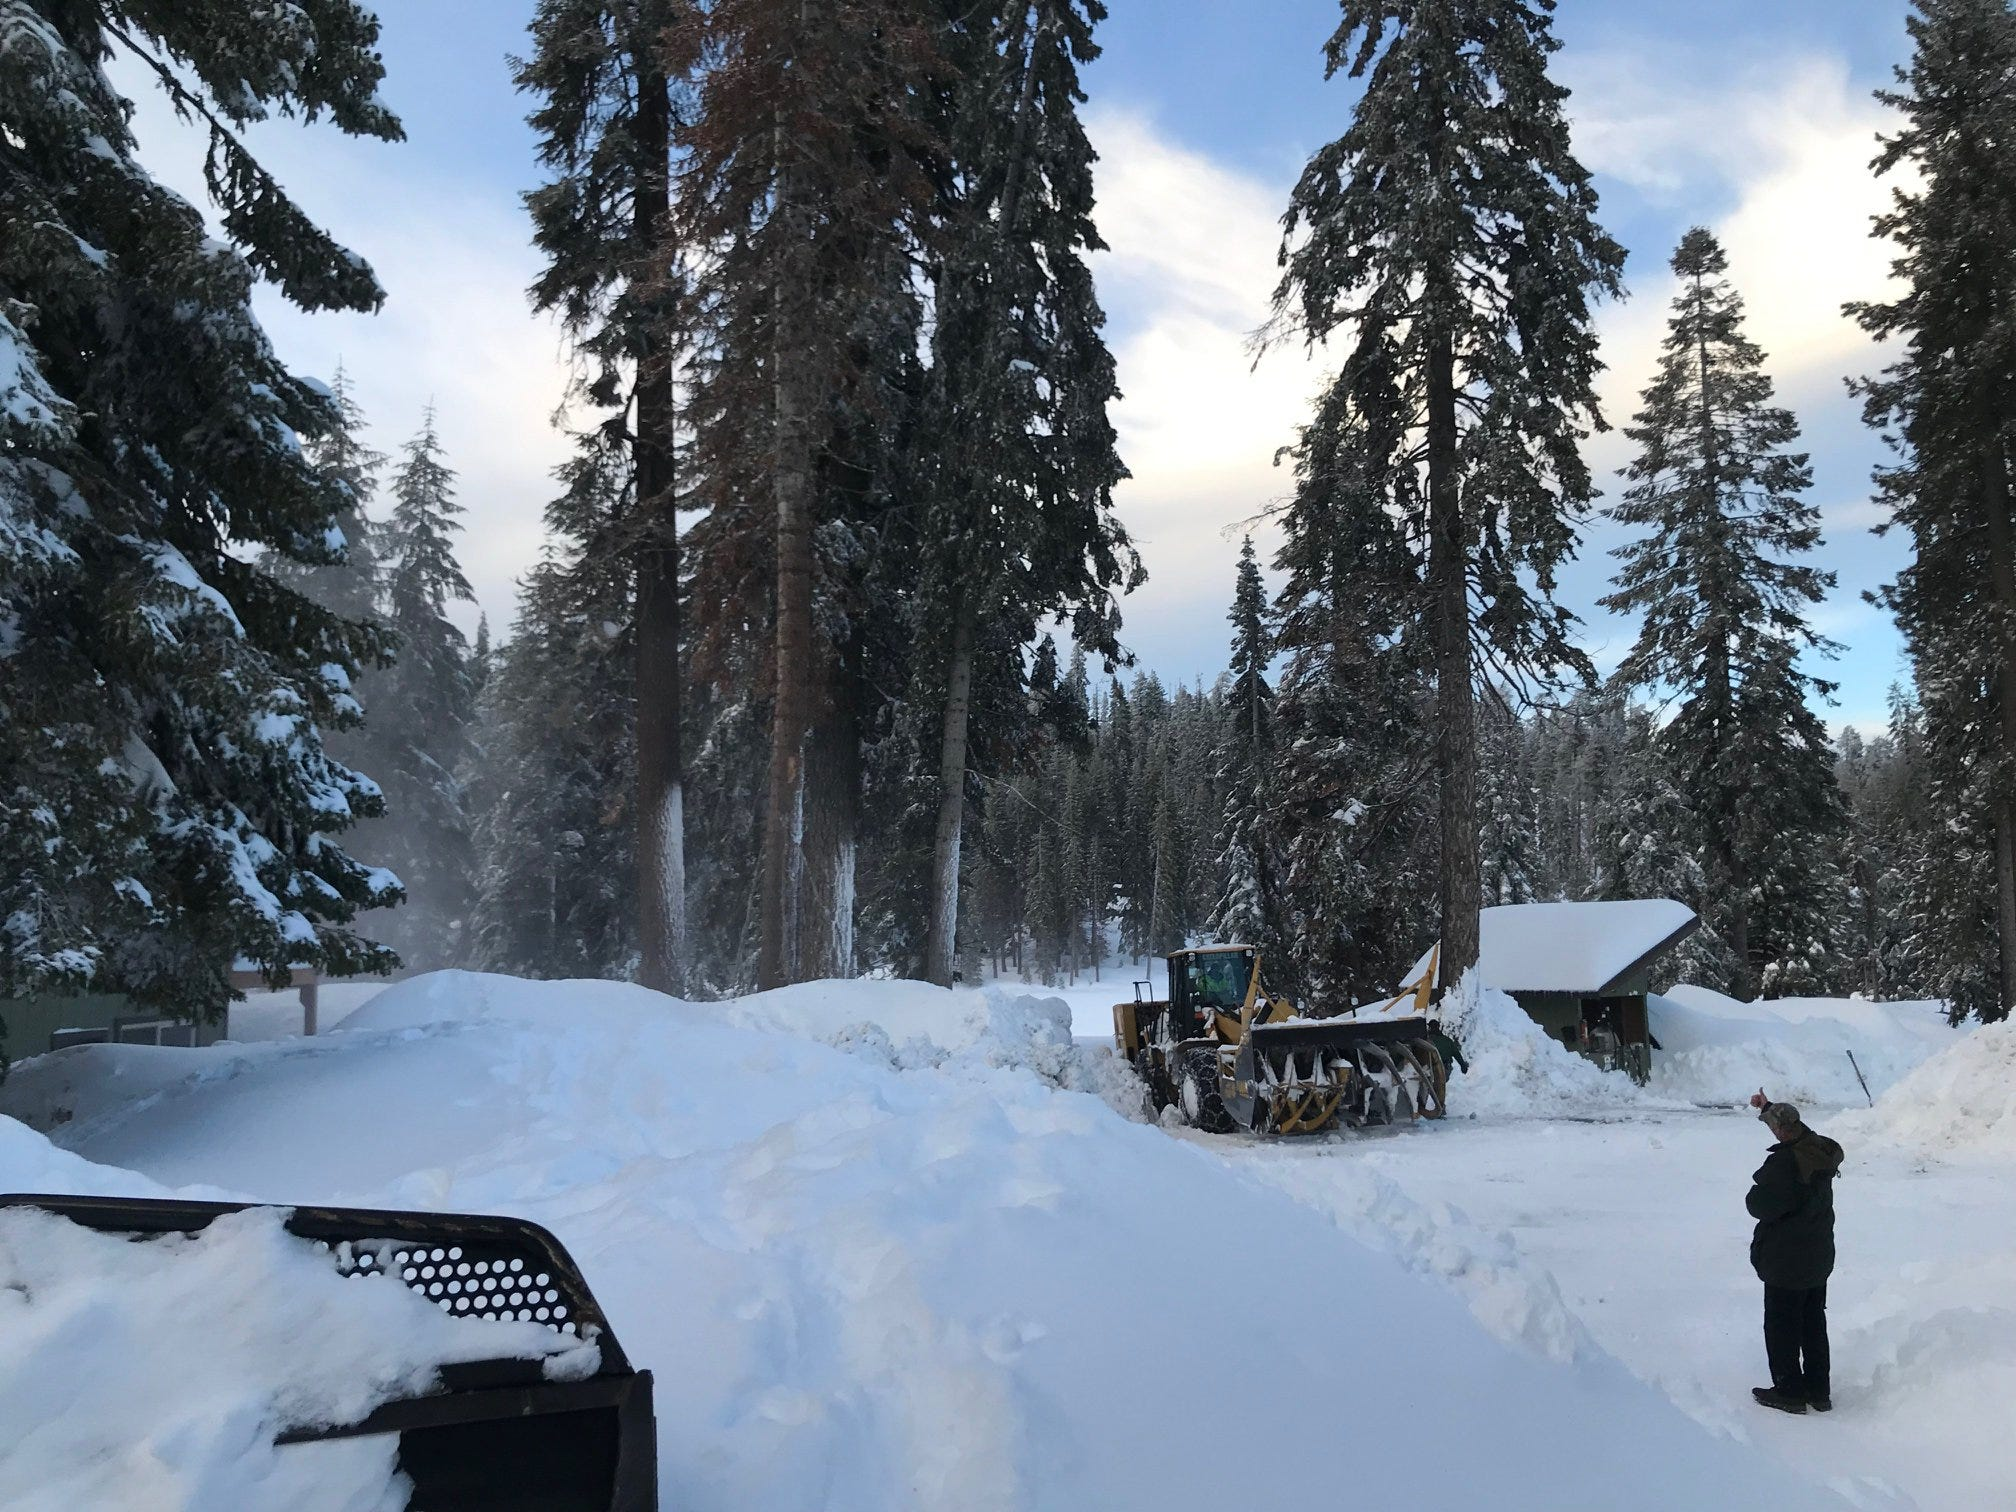 Whiteout conditions in California close Sequoia and Kings Canyon national parks